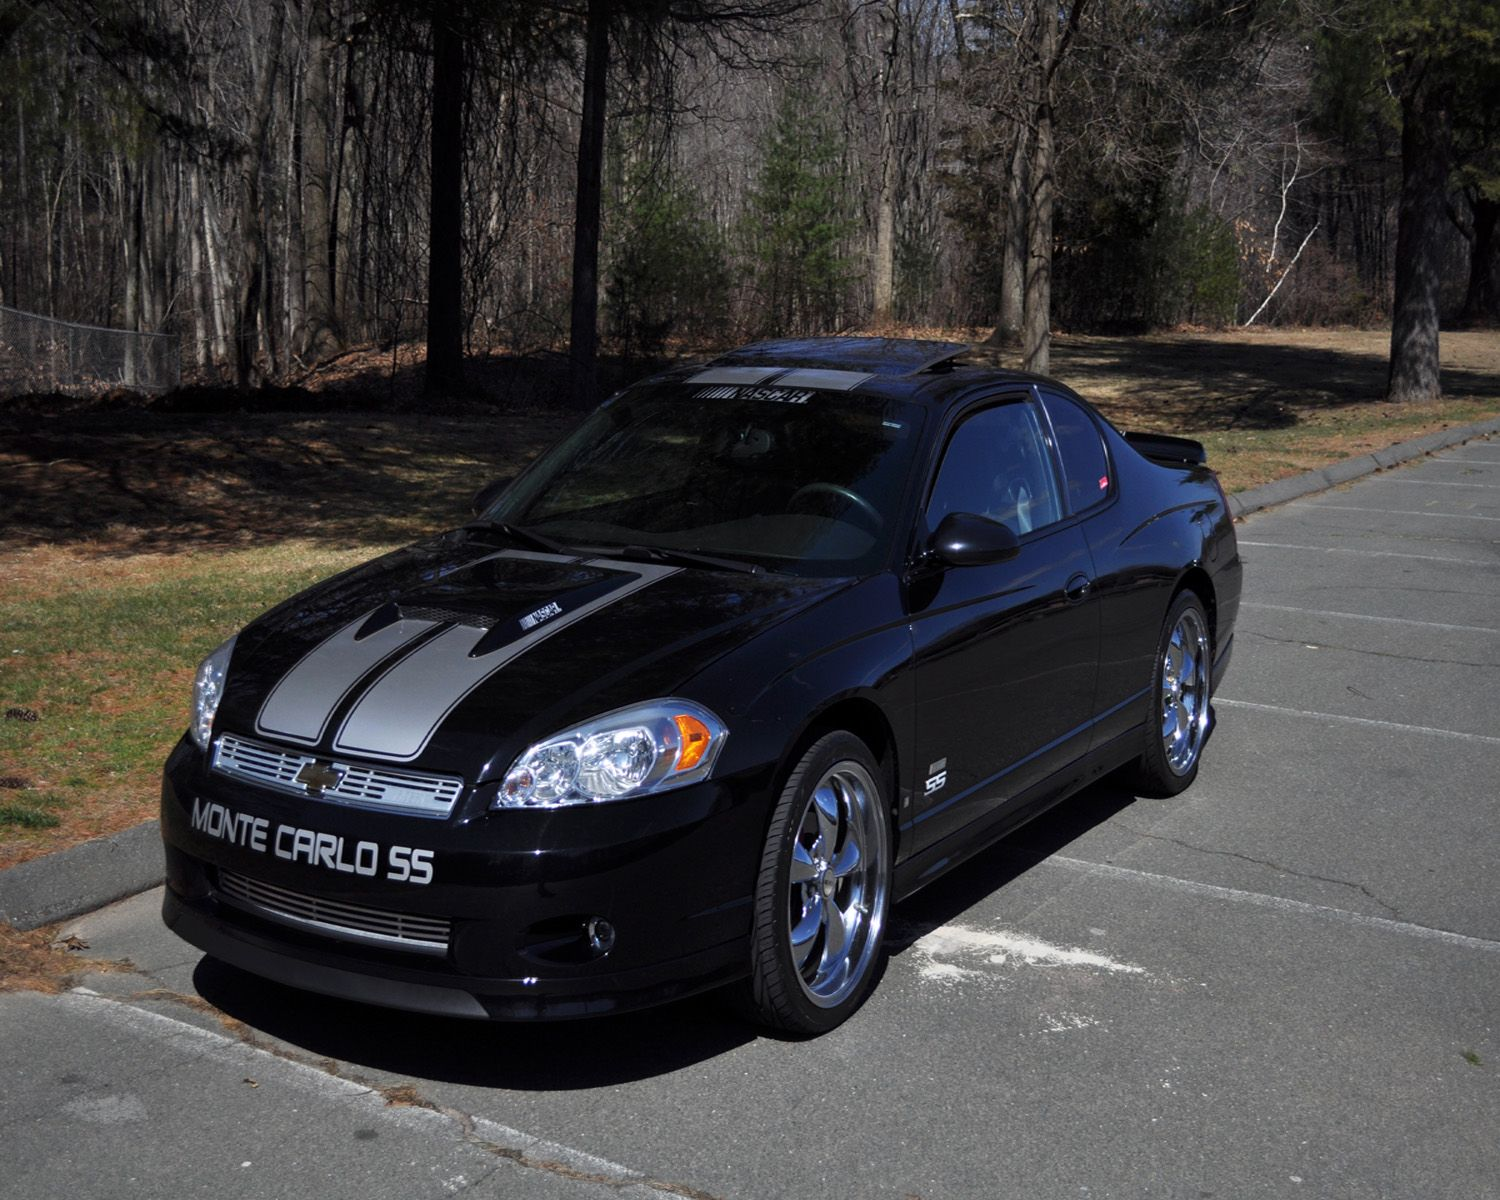 Monte Carlo SS Nascar Pace Car | Cars | Chevy monte carlo, Chevy